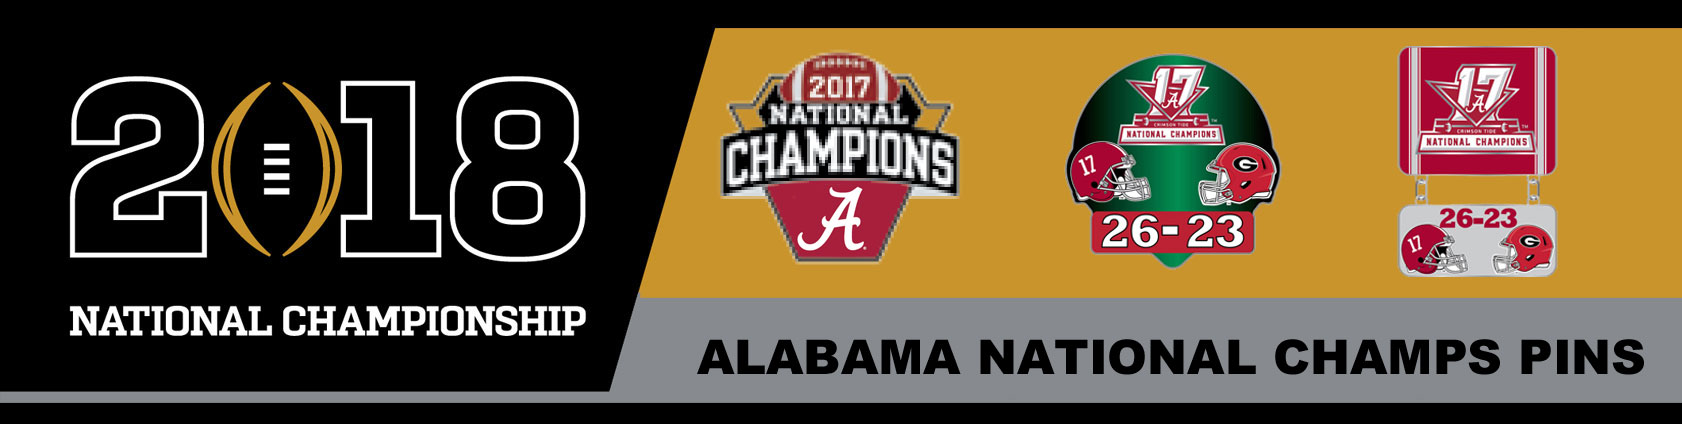 Alabama 2017 National Champs Pins